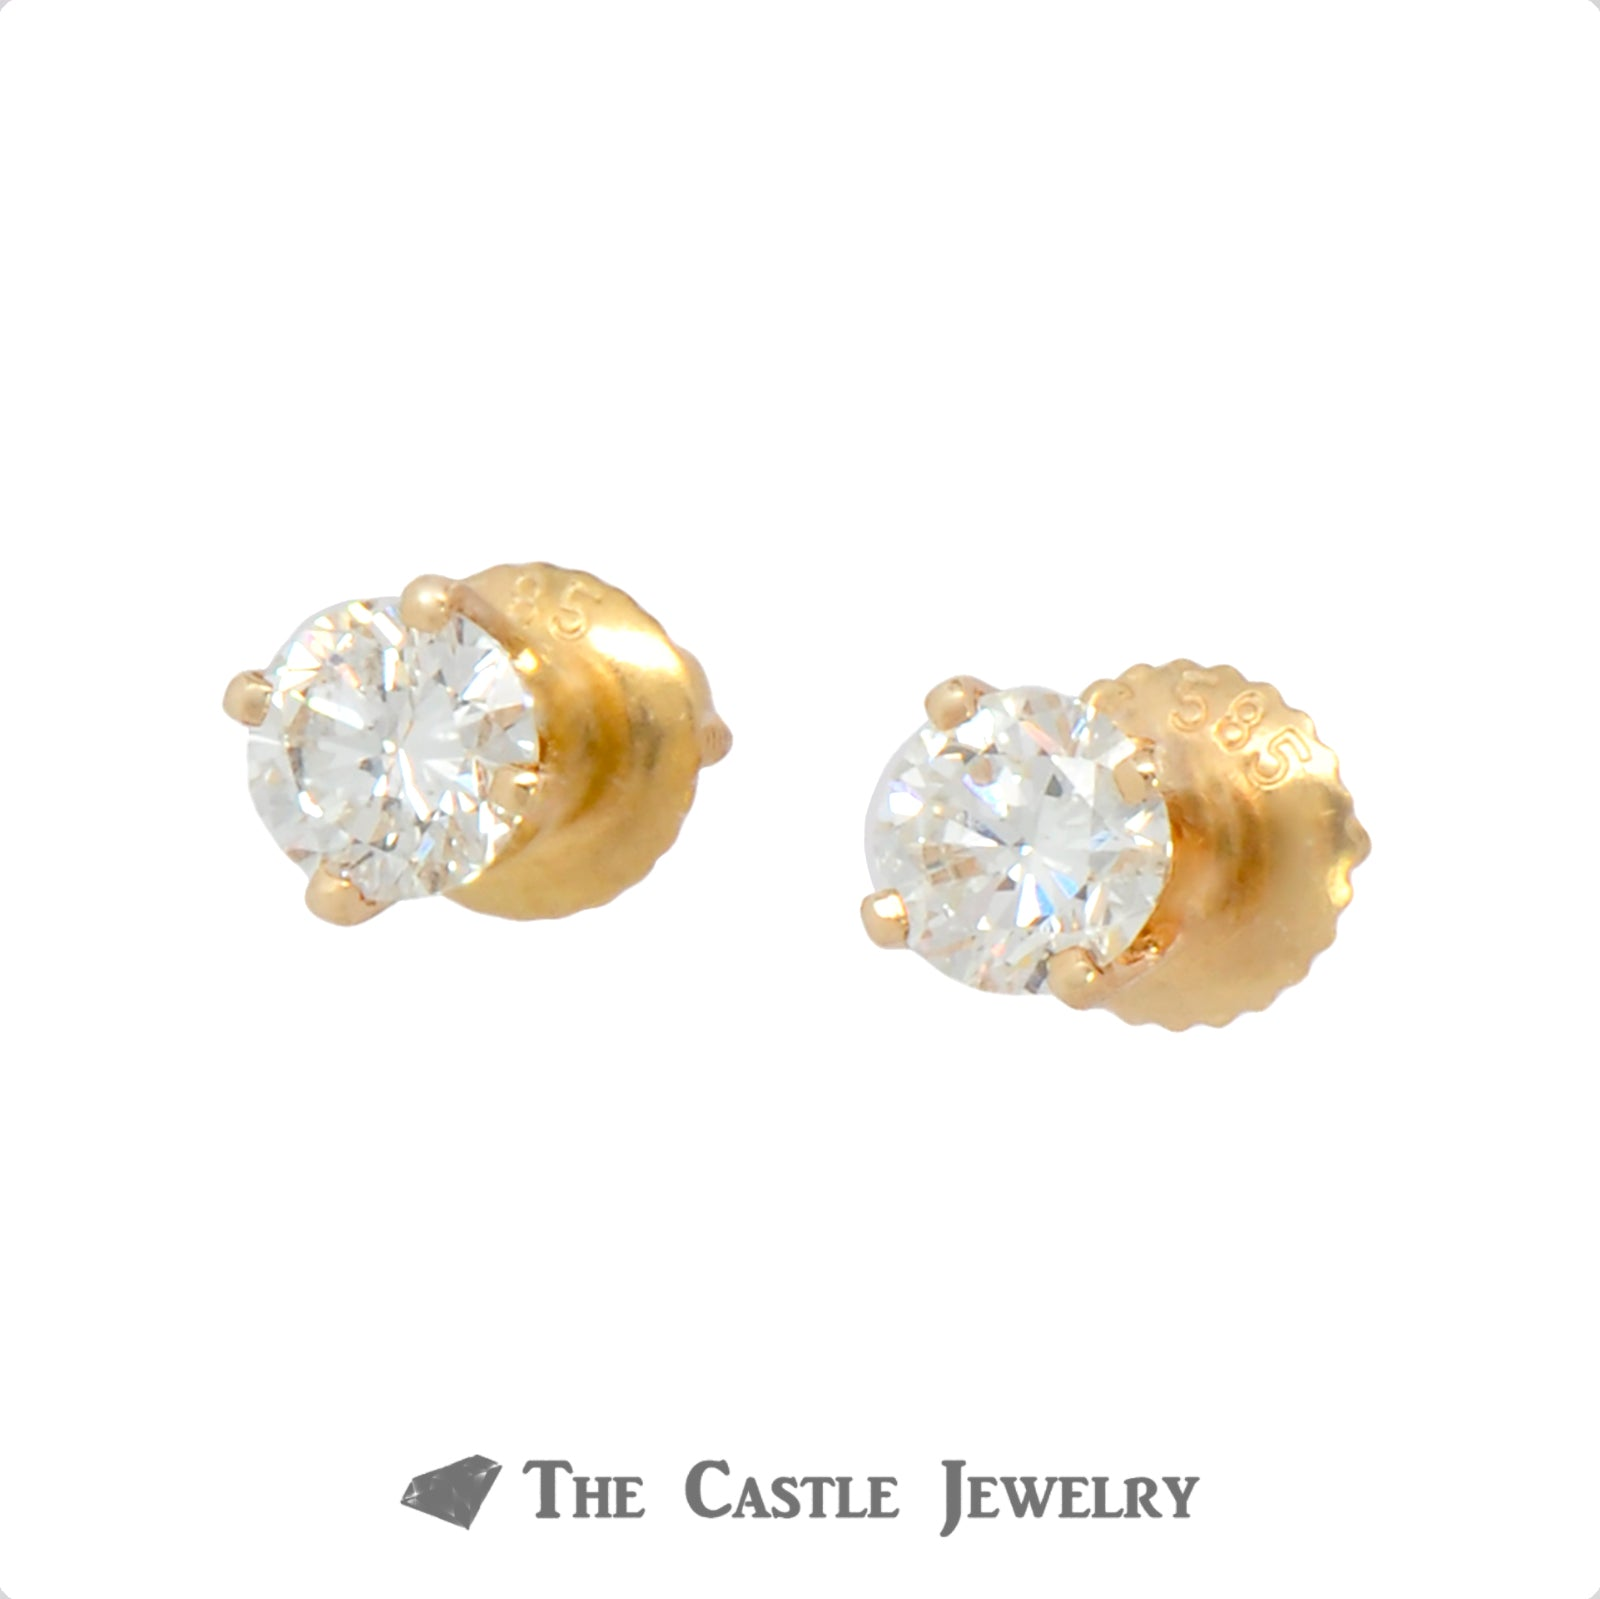 .75cttw Round Brilliant Cut Diamond Studs in 14k Yellow Gold-1